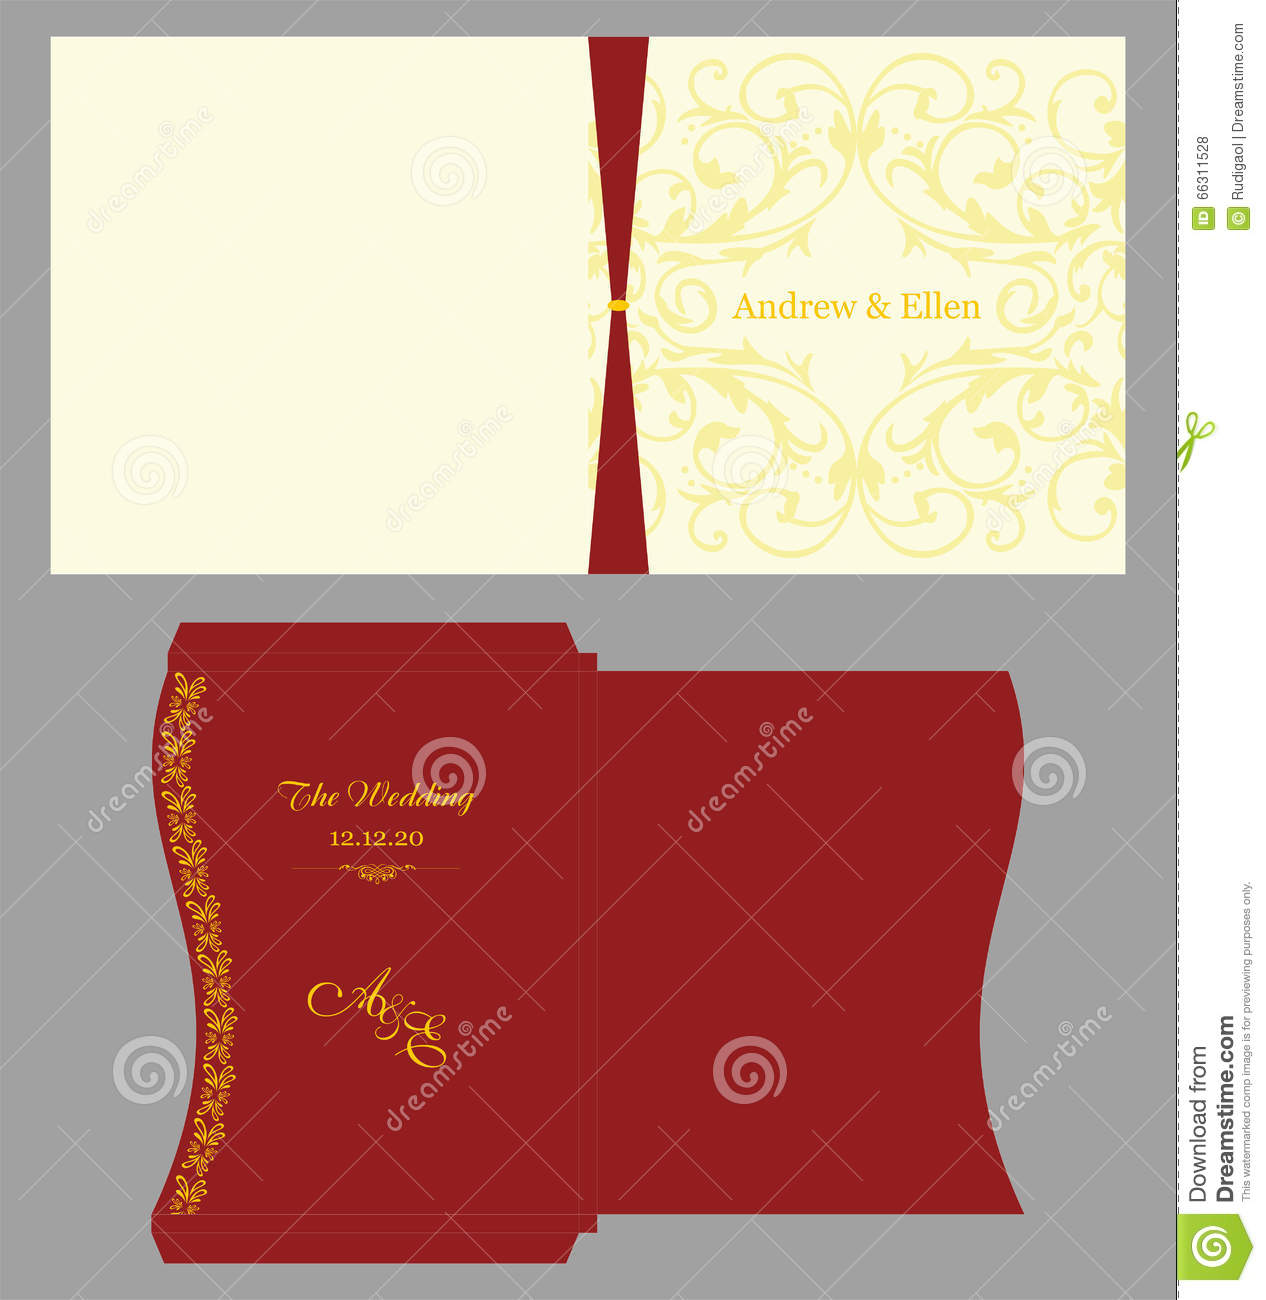 Floral Square Invitation With Envelope Stock Vector - Illustration ...